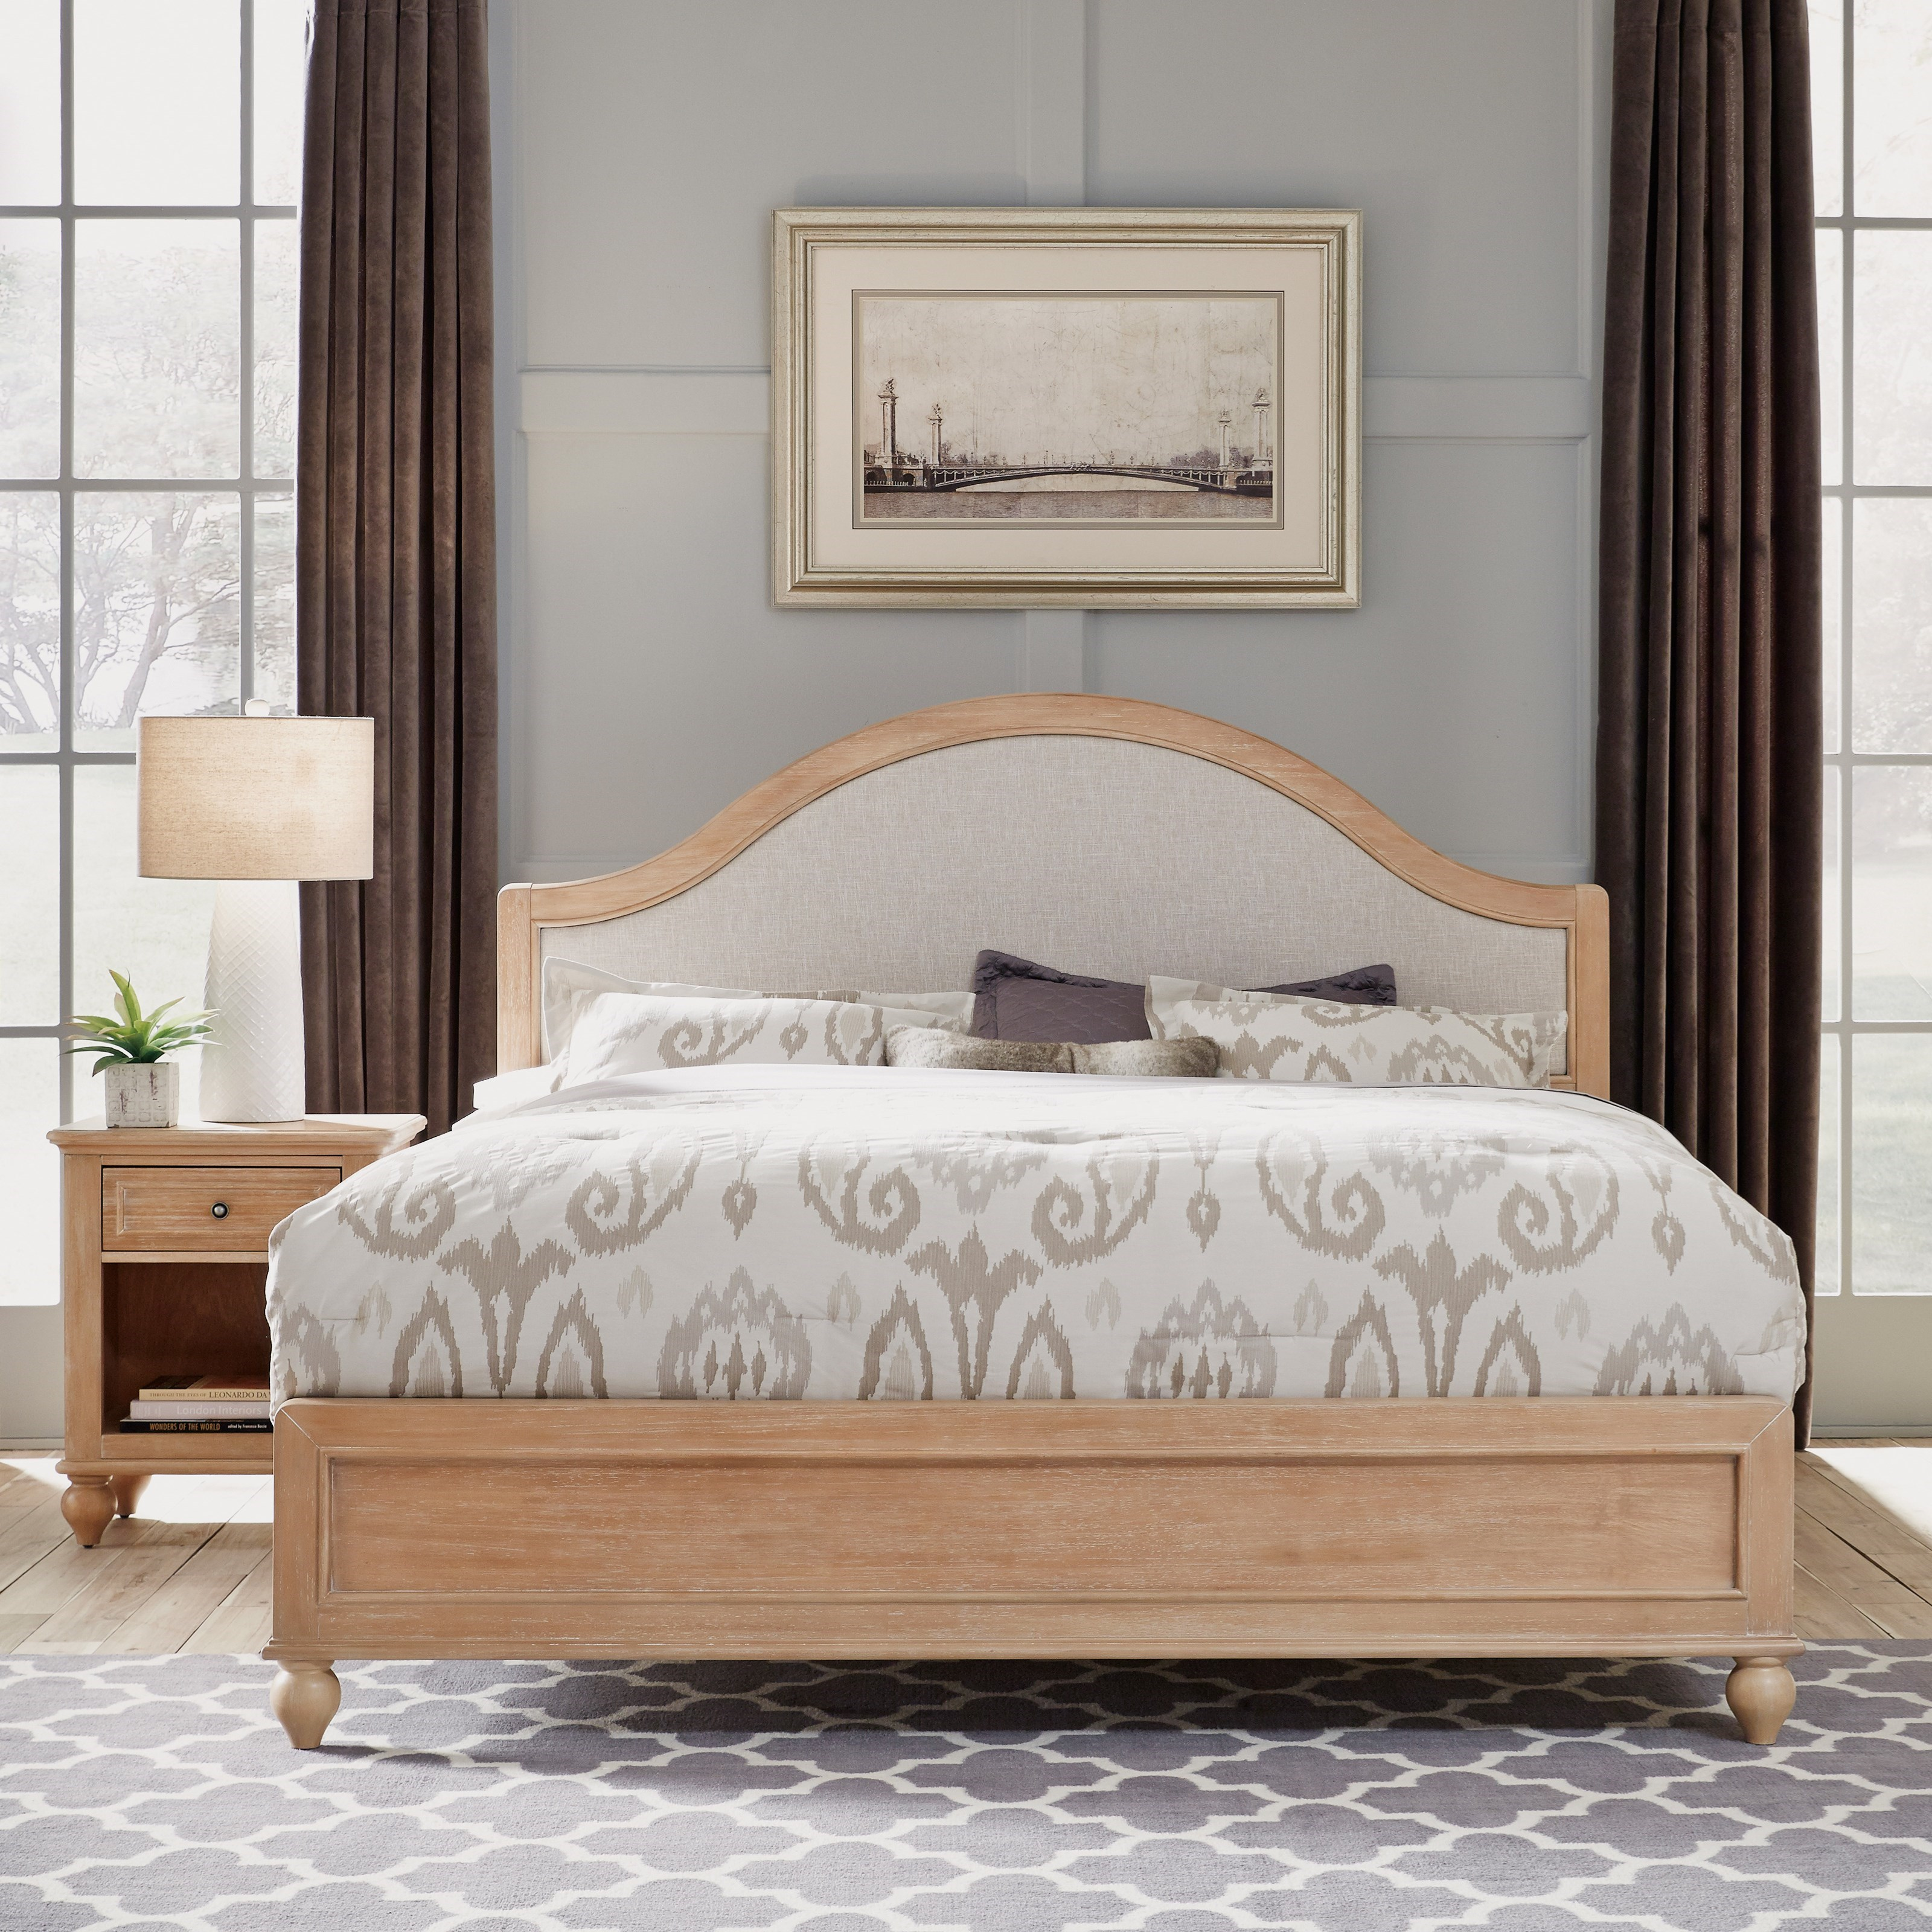 King Bed &  Nightstand